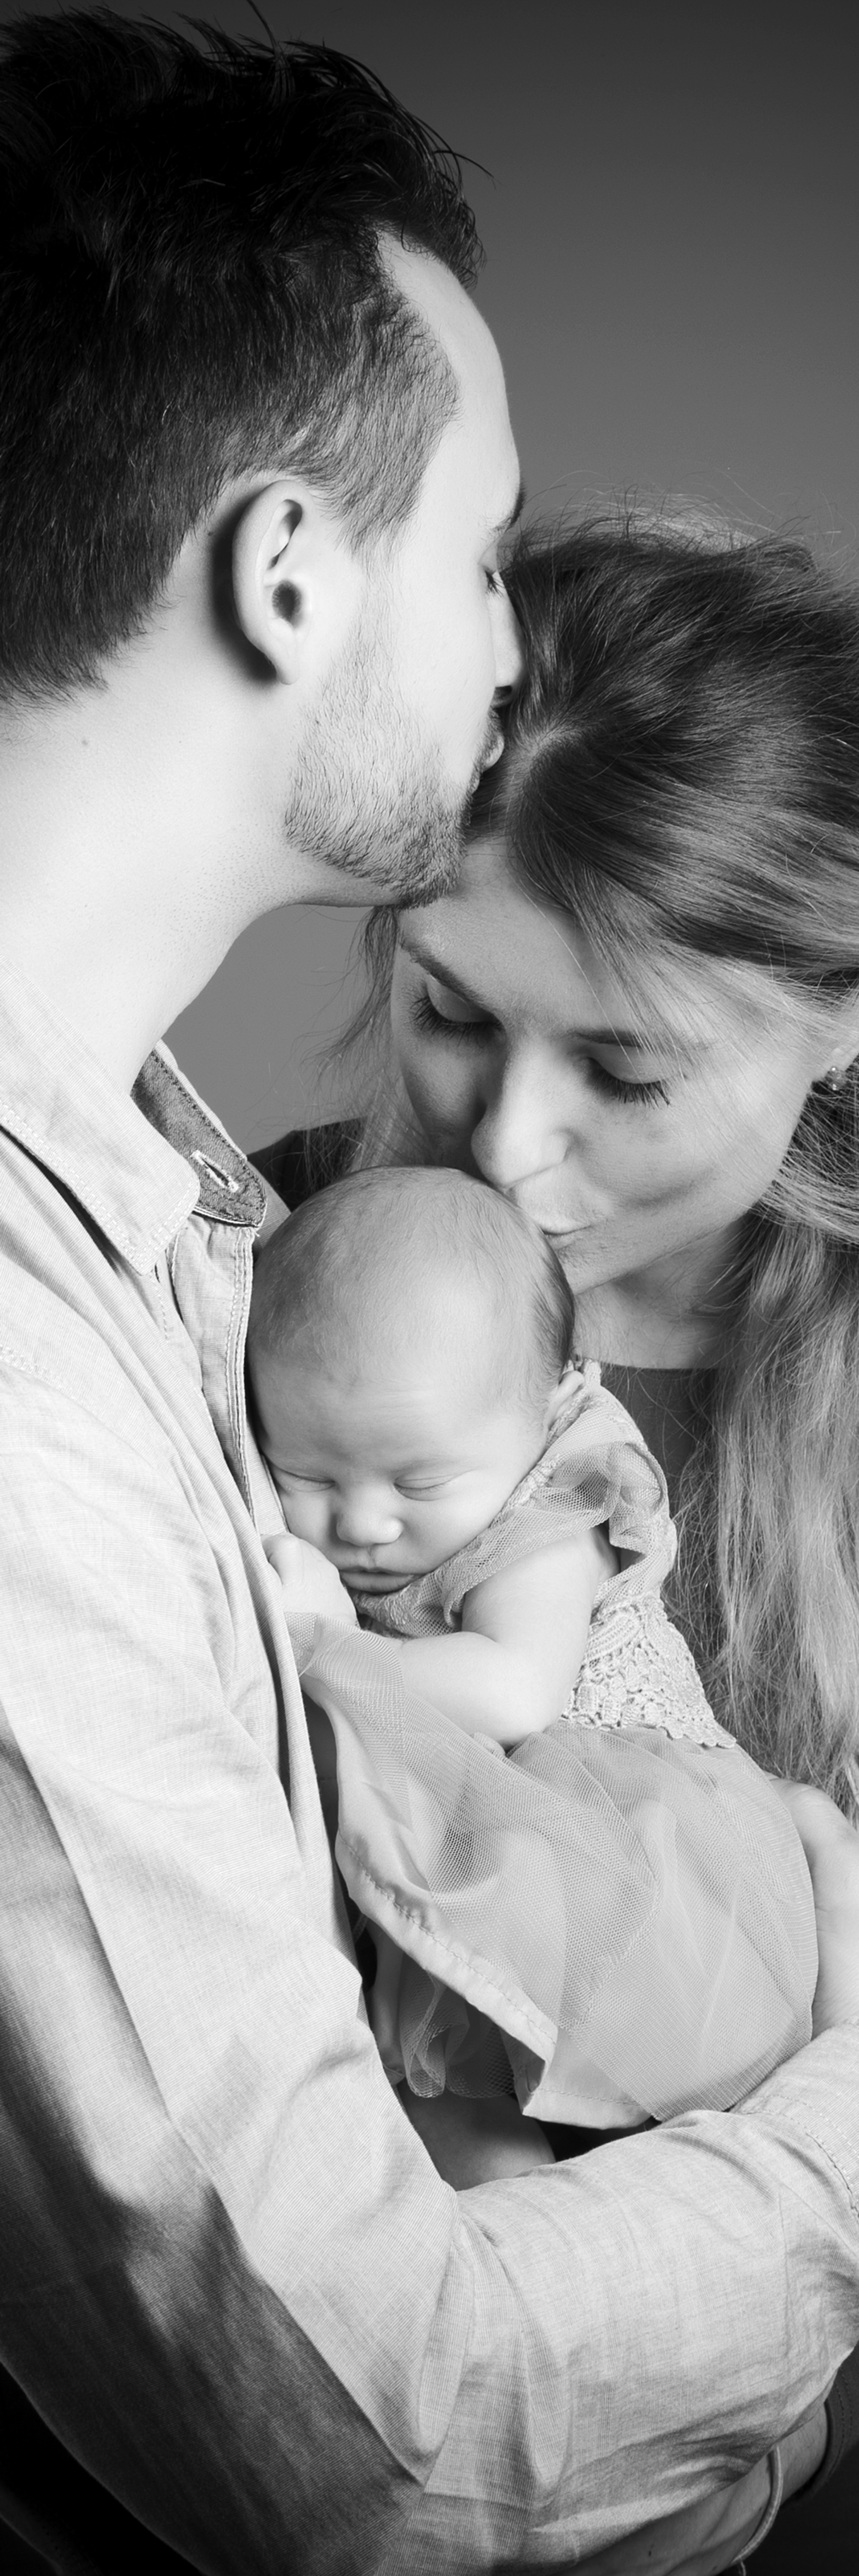 photography-studio-leicester-photo-shoot-photographer-baby-first-zigzag-zig-zag-family-clarendon-park-photographer-queens-road-ideas-props-newborn-parents-kiss.jpg